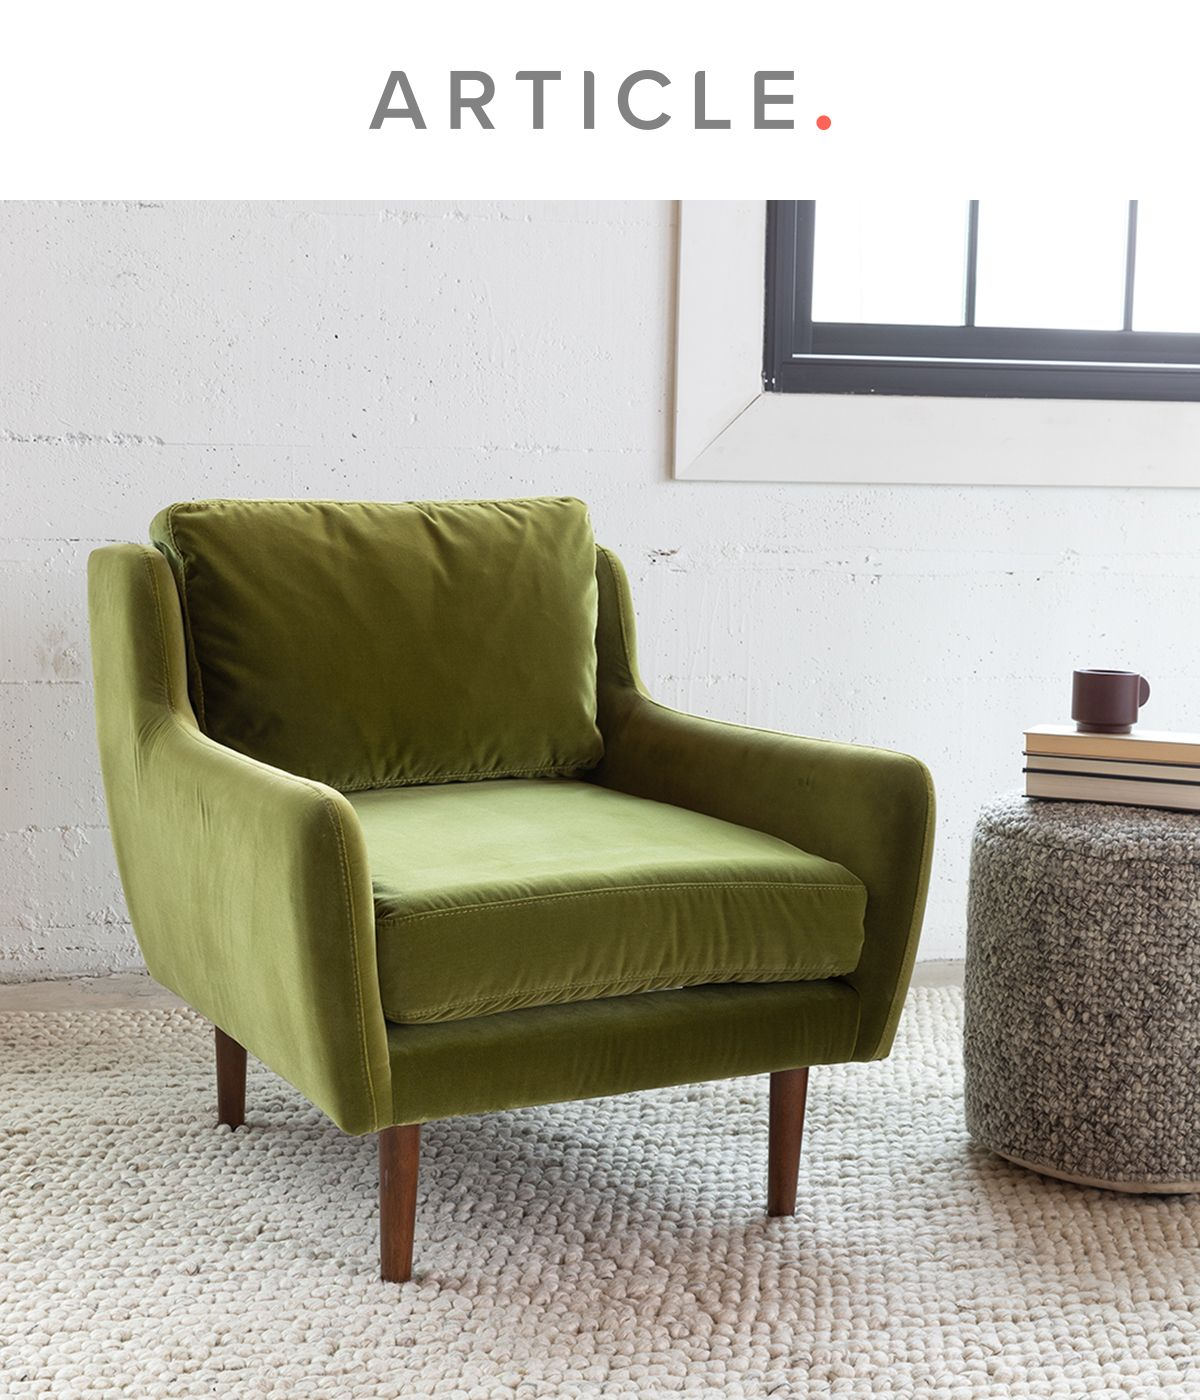 Matrix Olive Green Chair Green Furniture Living Room Green